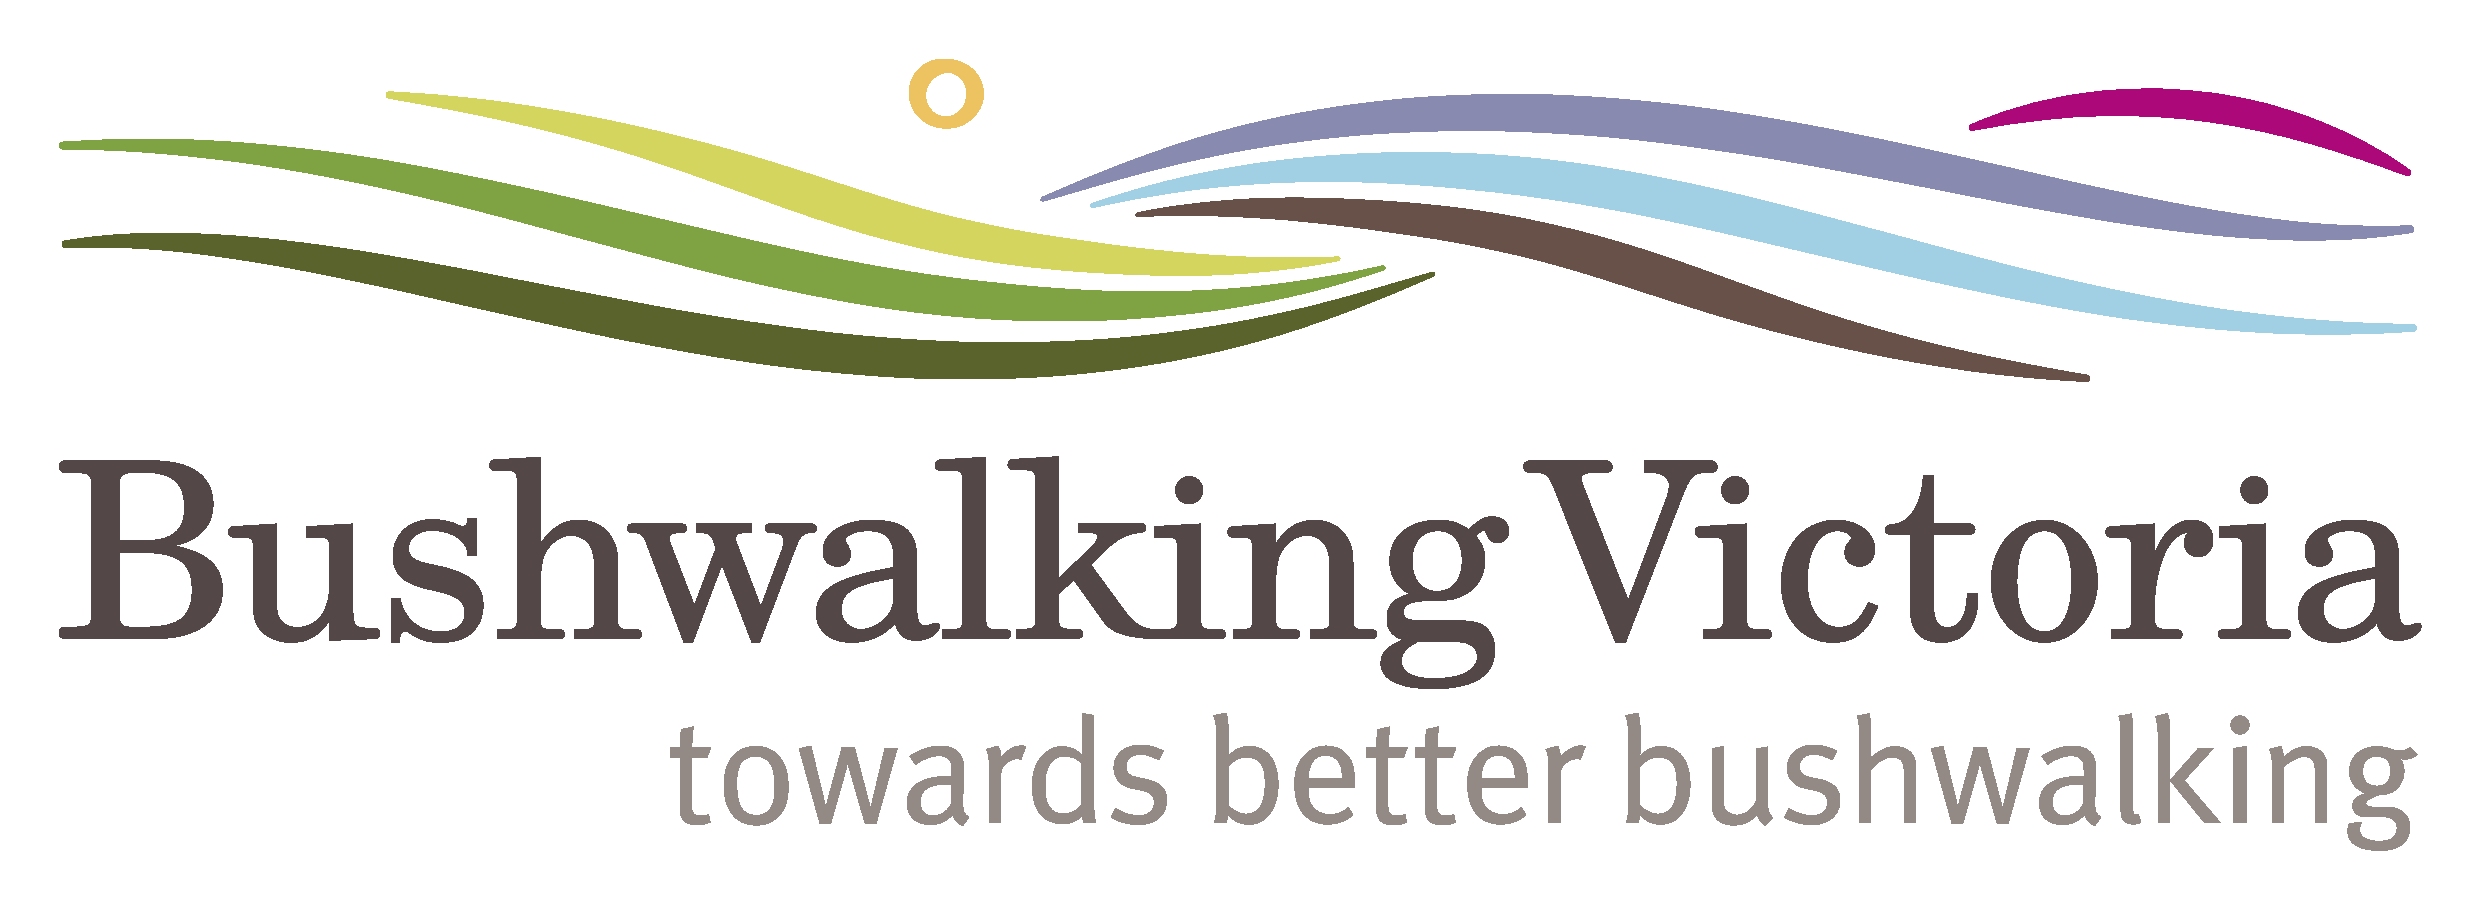 Bushwalking Vic logo with tagline 2